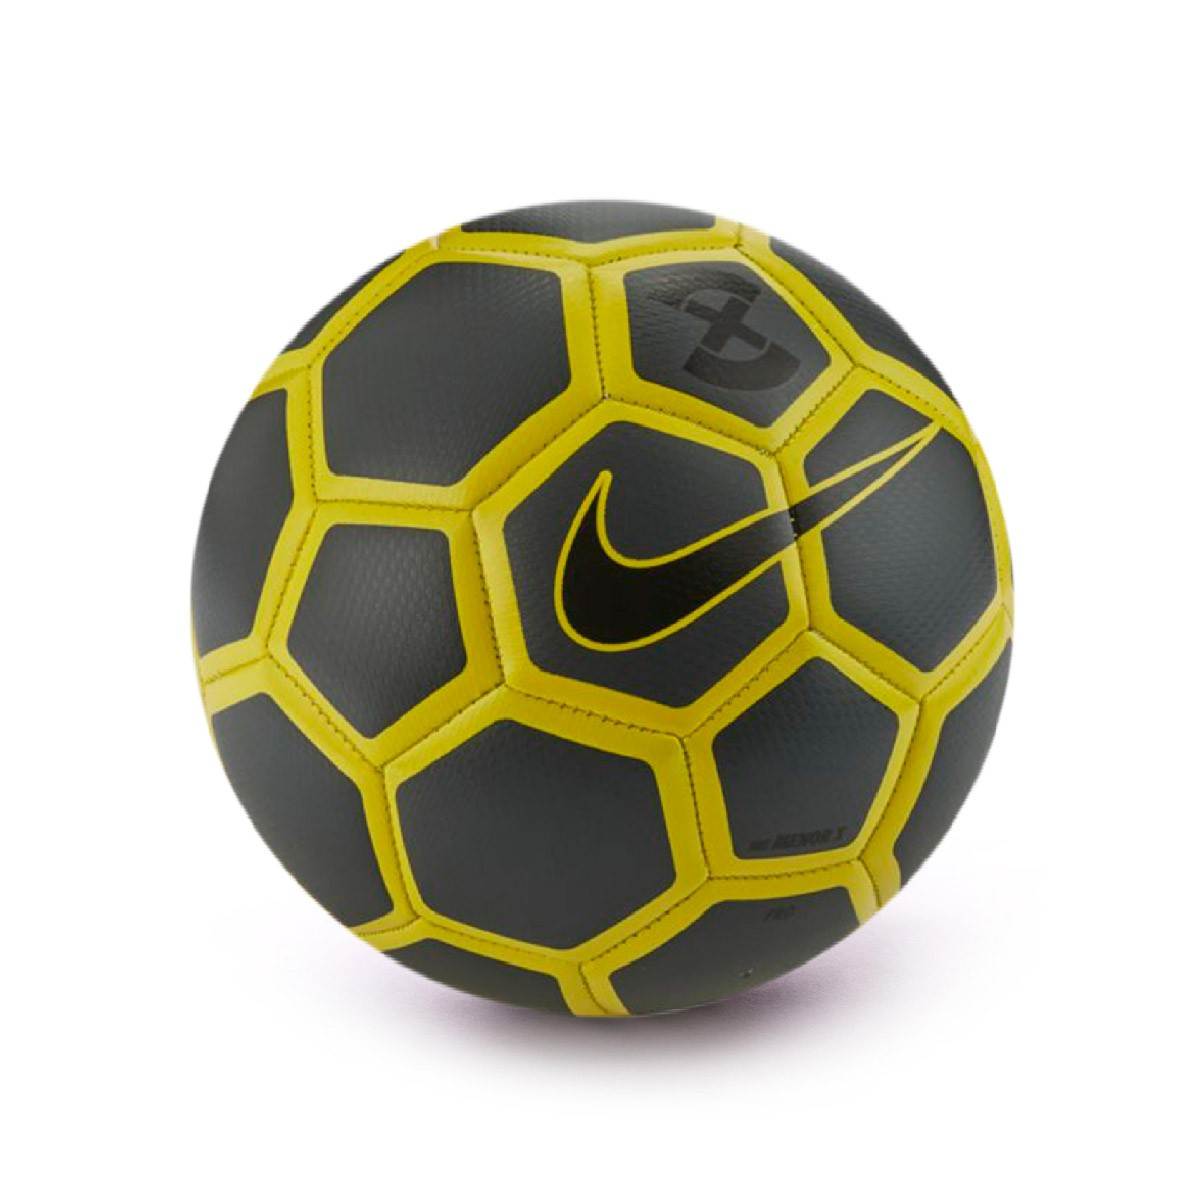 Dalset Berenjena Picasso  Ball Nike Menor X Anthracite-Optical yellow-Black - Football store Fútbol  Emotion